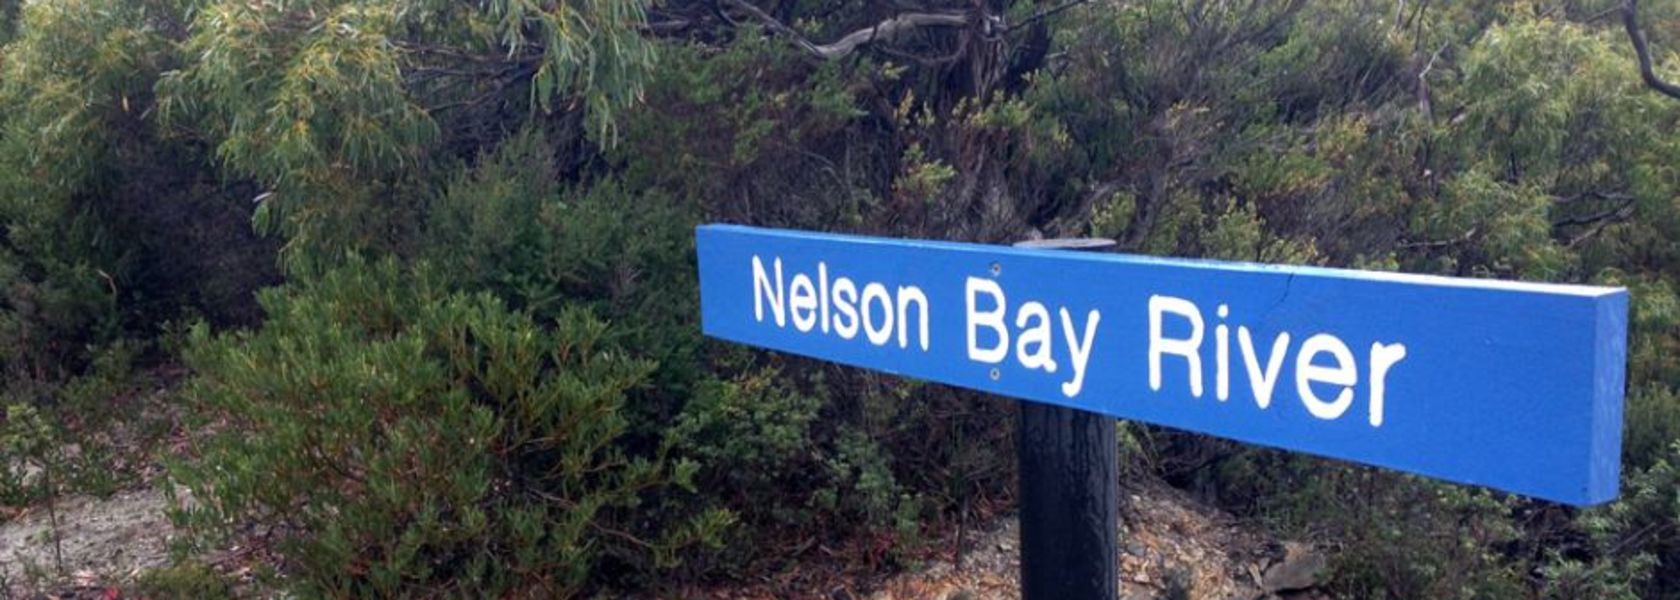 Shree to reopen Nelson Bay River mine